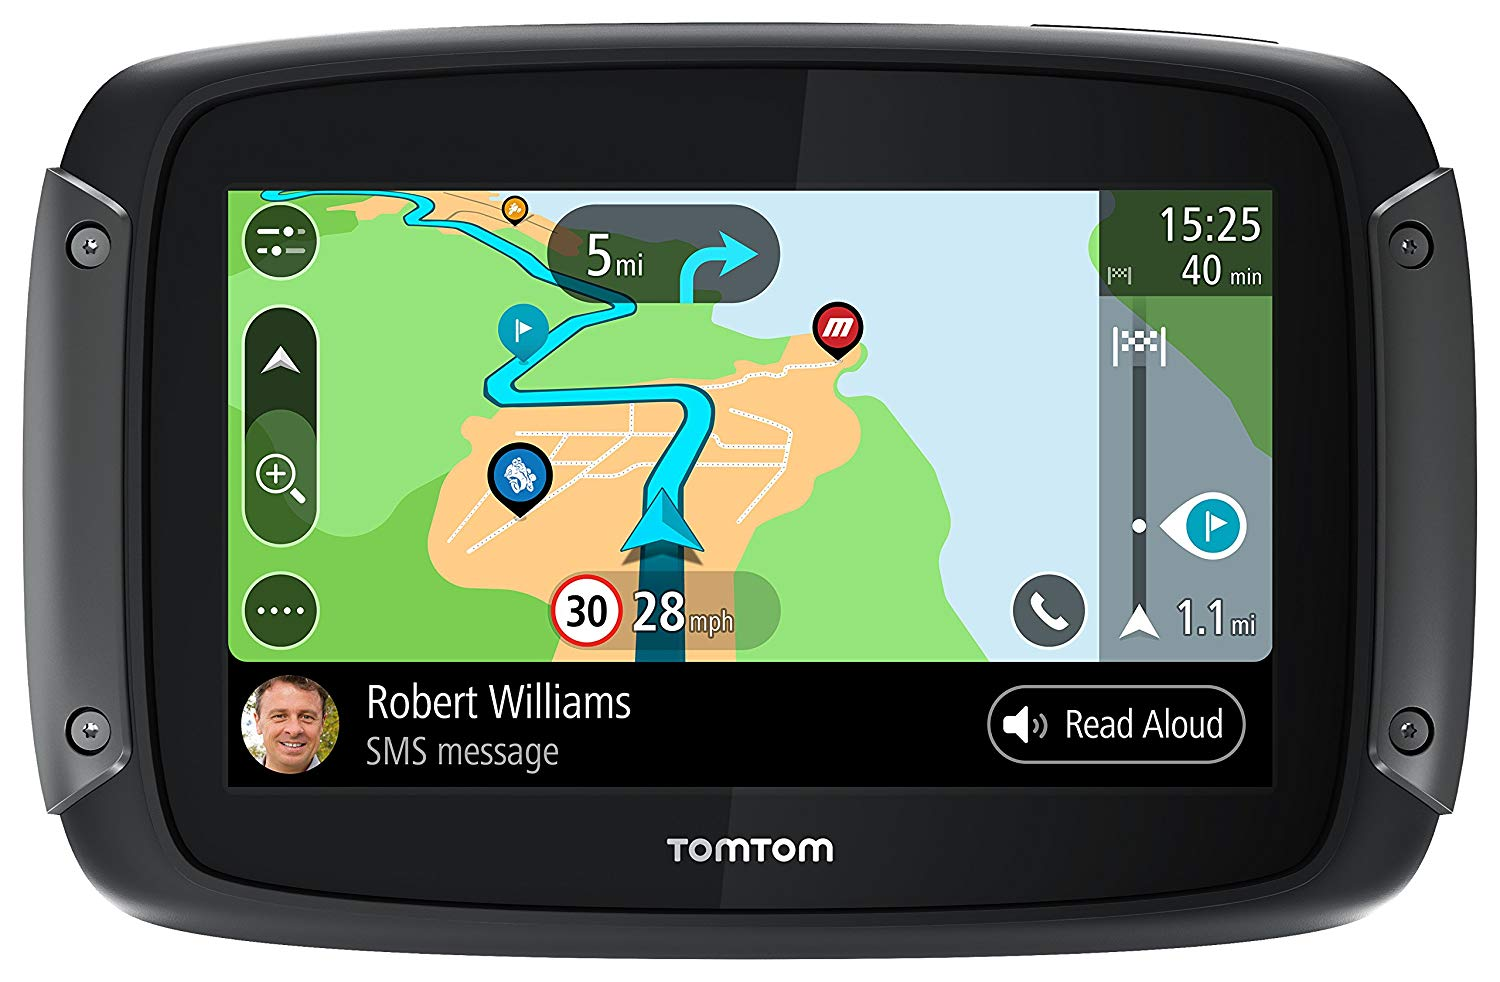 tomtom motorcycle gps